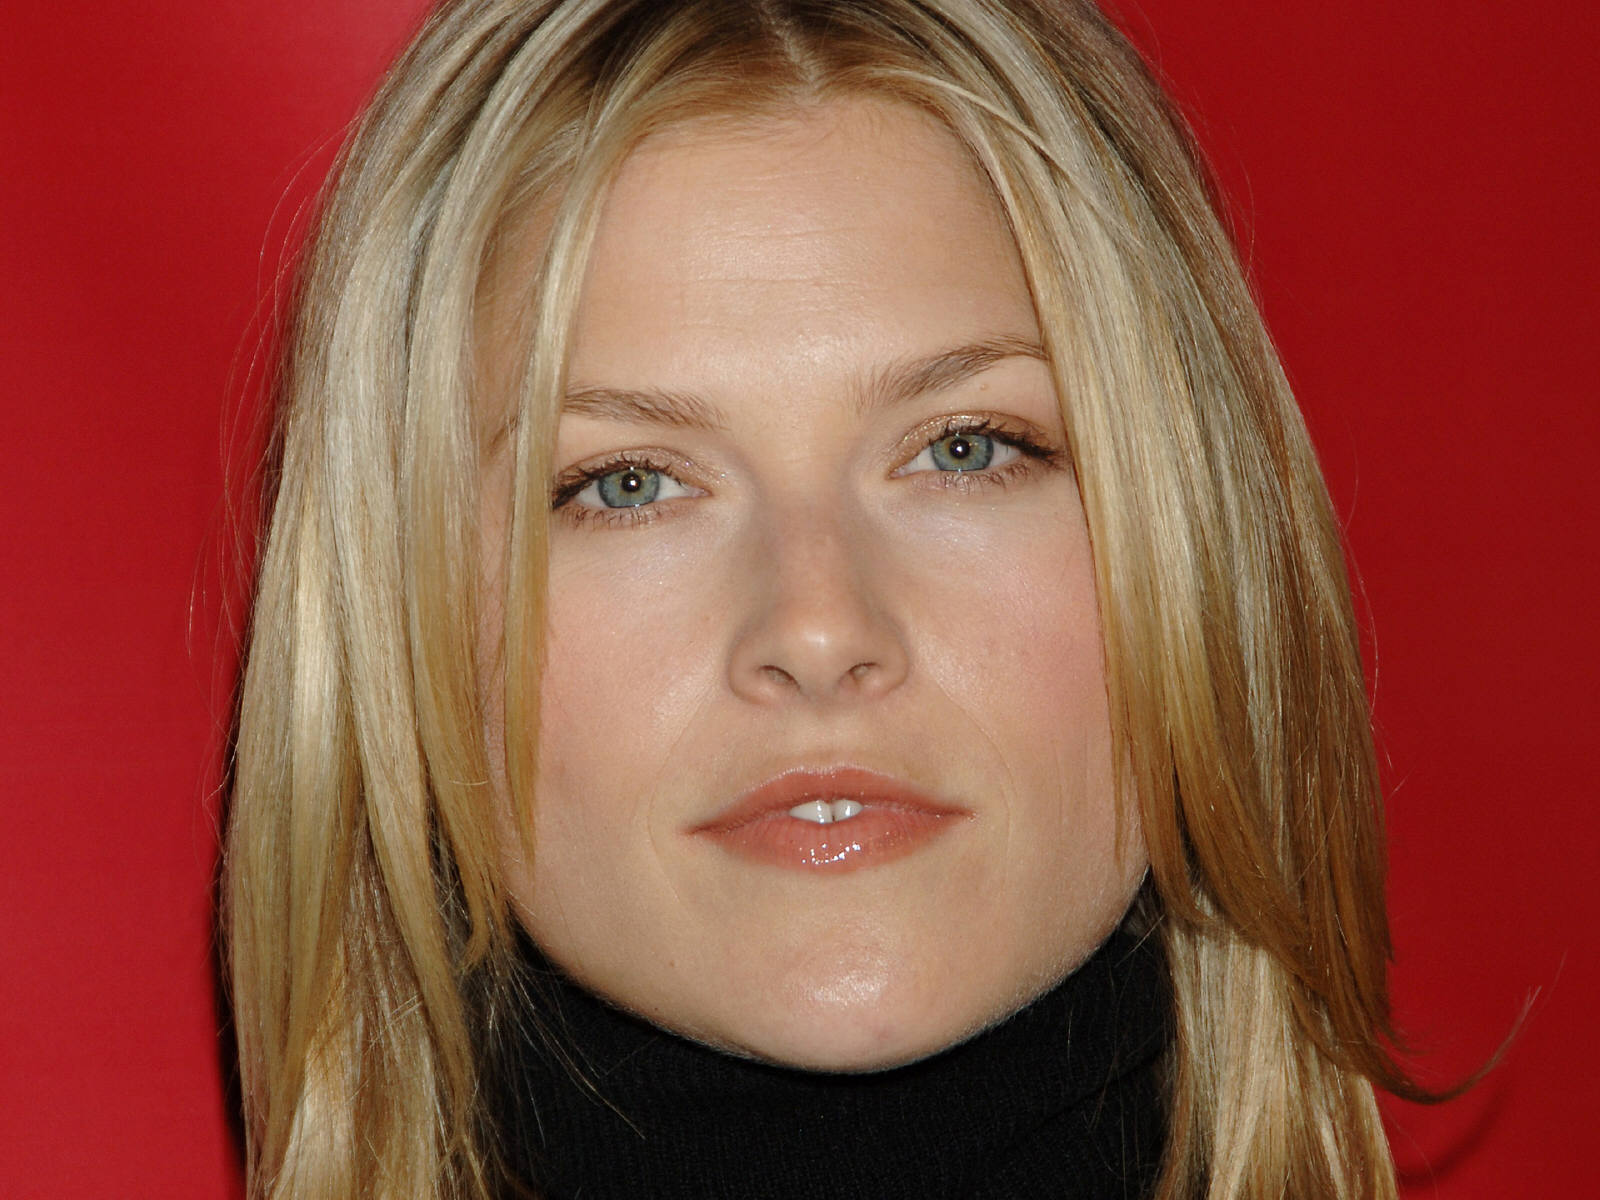 Ali Larter, Data, Media, Ali, Larter, Wallpaper, Celebrity, Girls Wallpaper